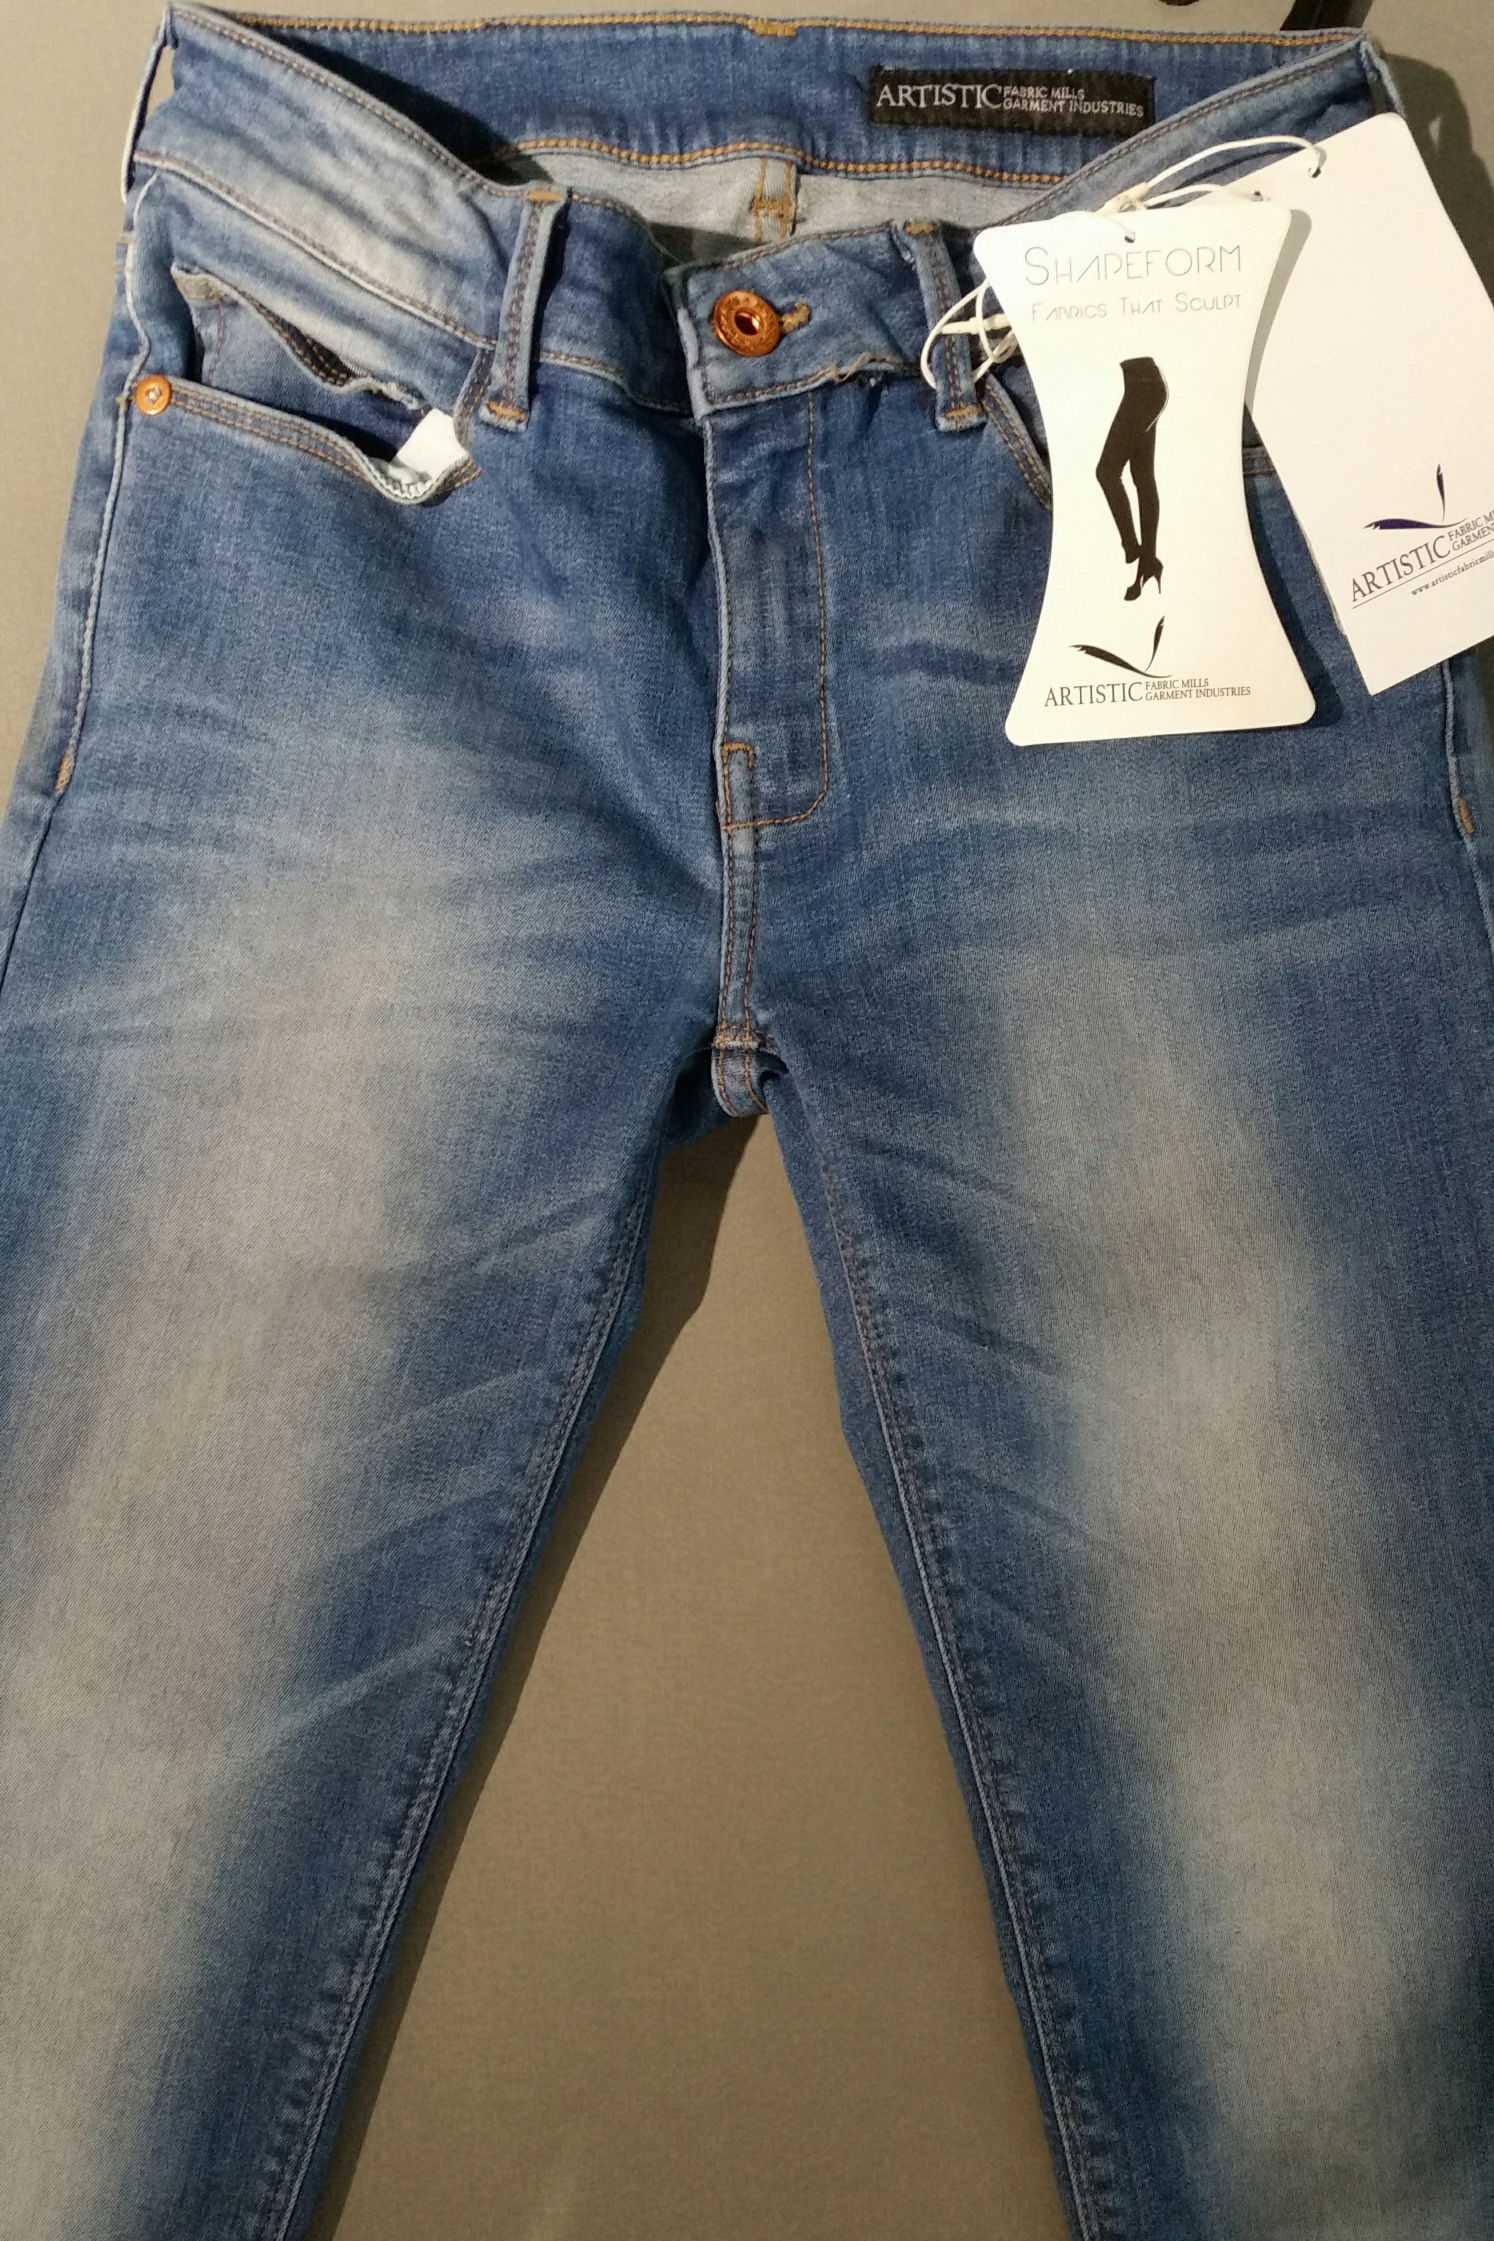 Artistic Fabric Mills Shapeform jeans